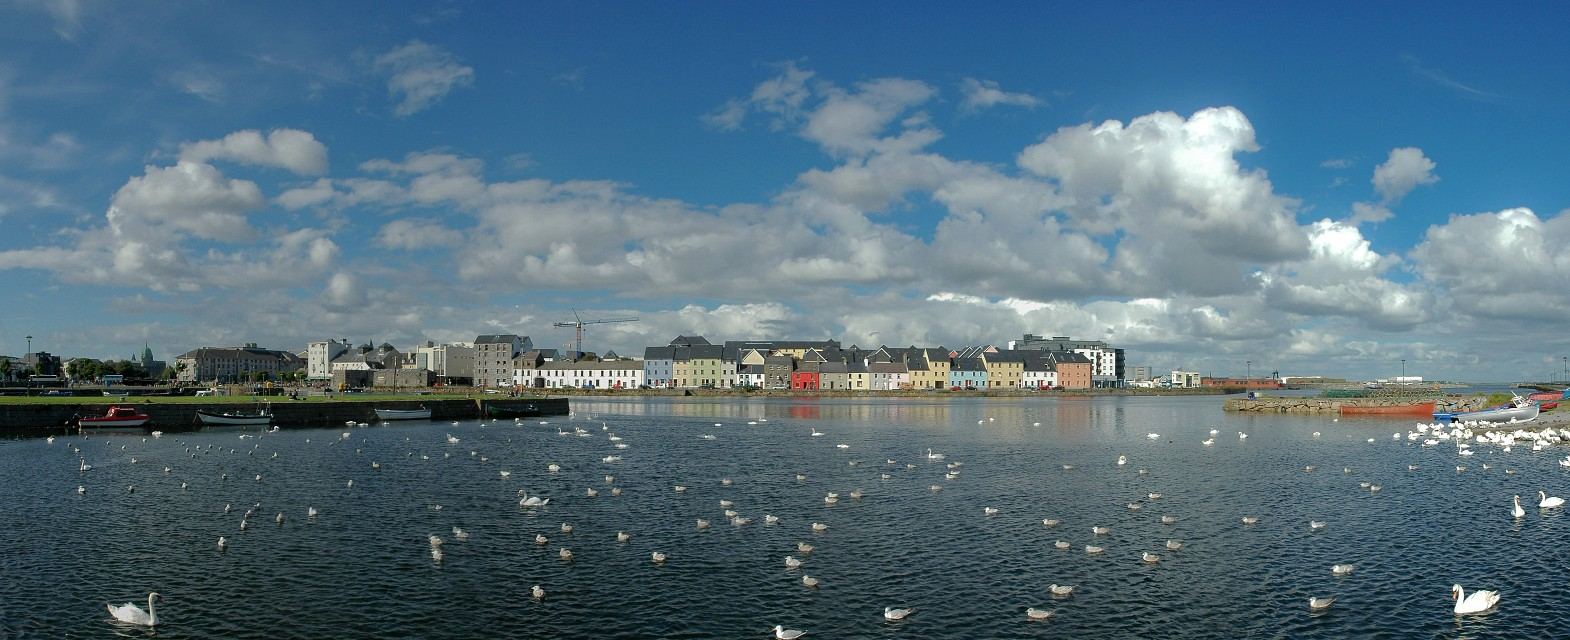 - Galway